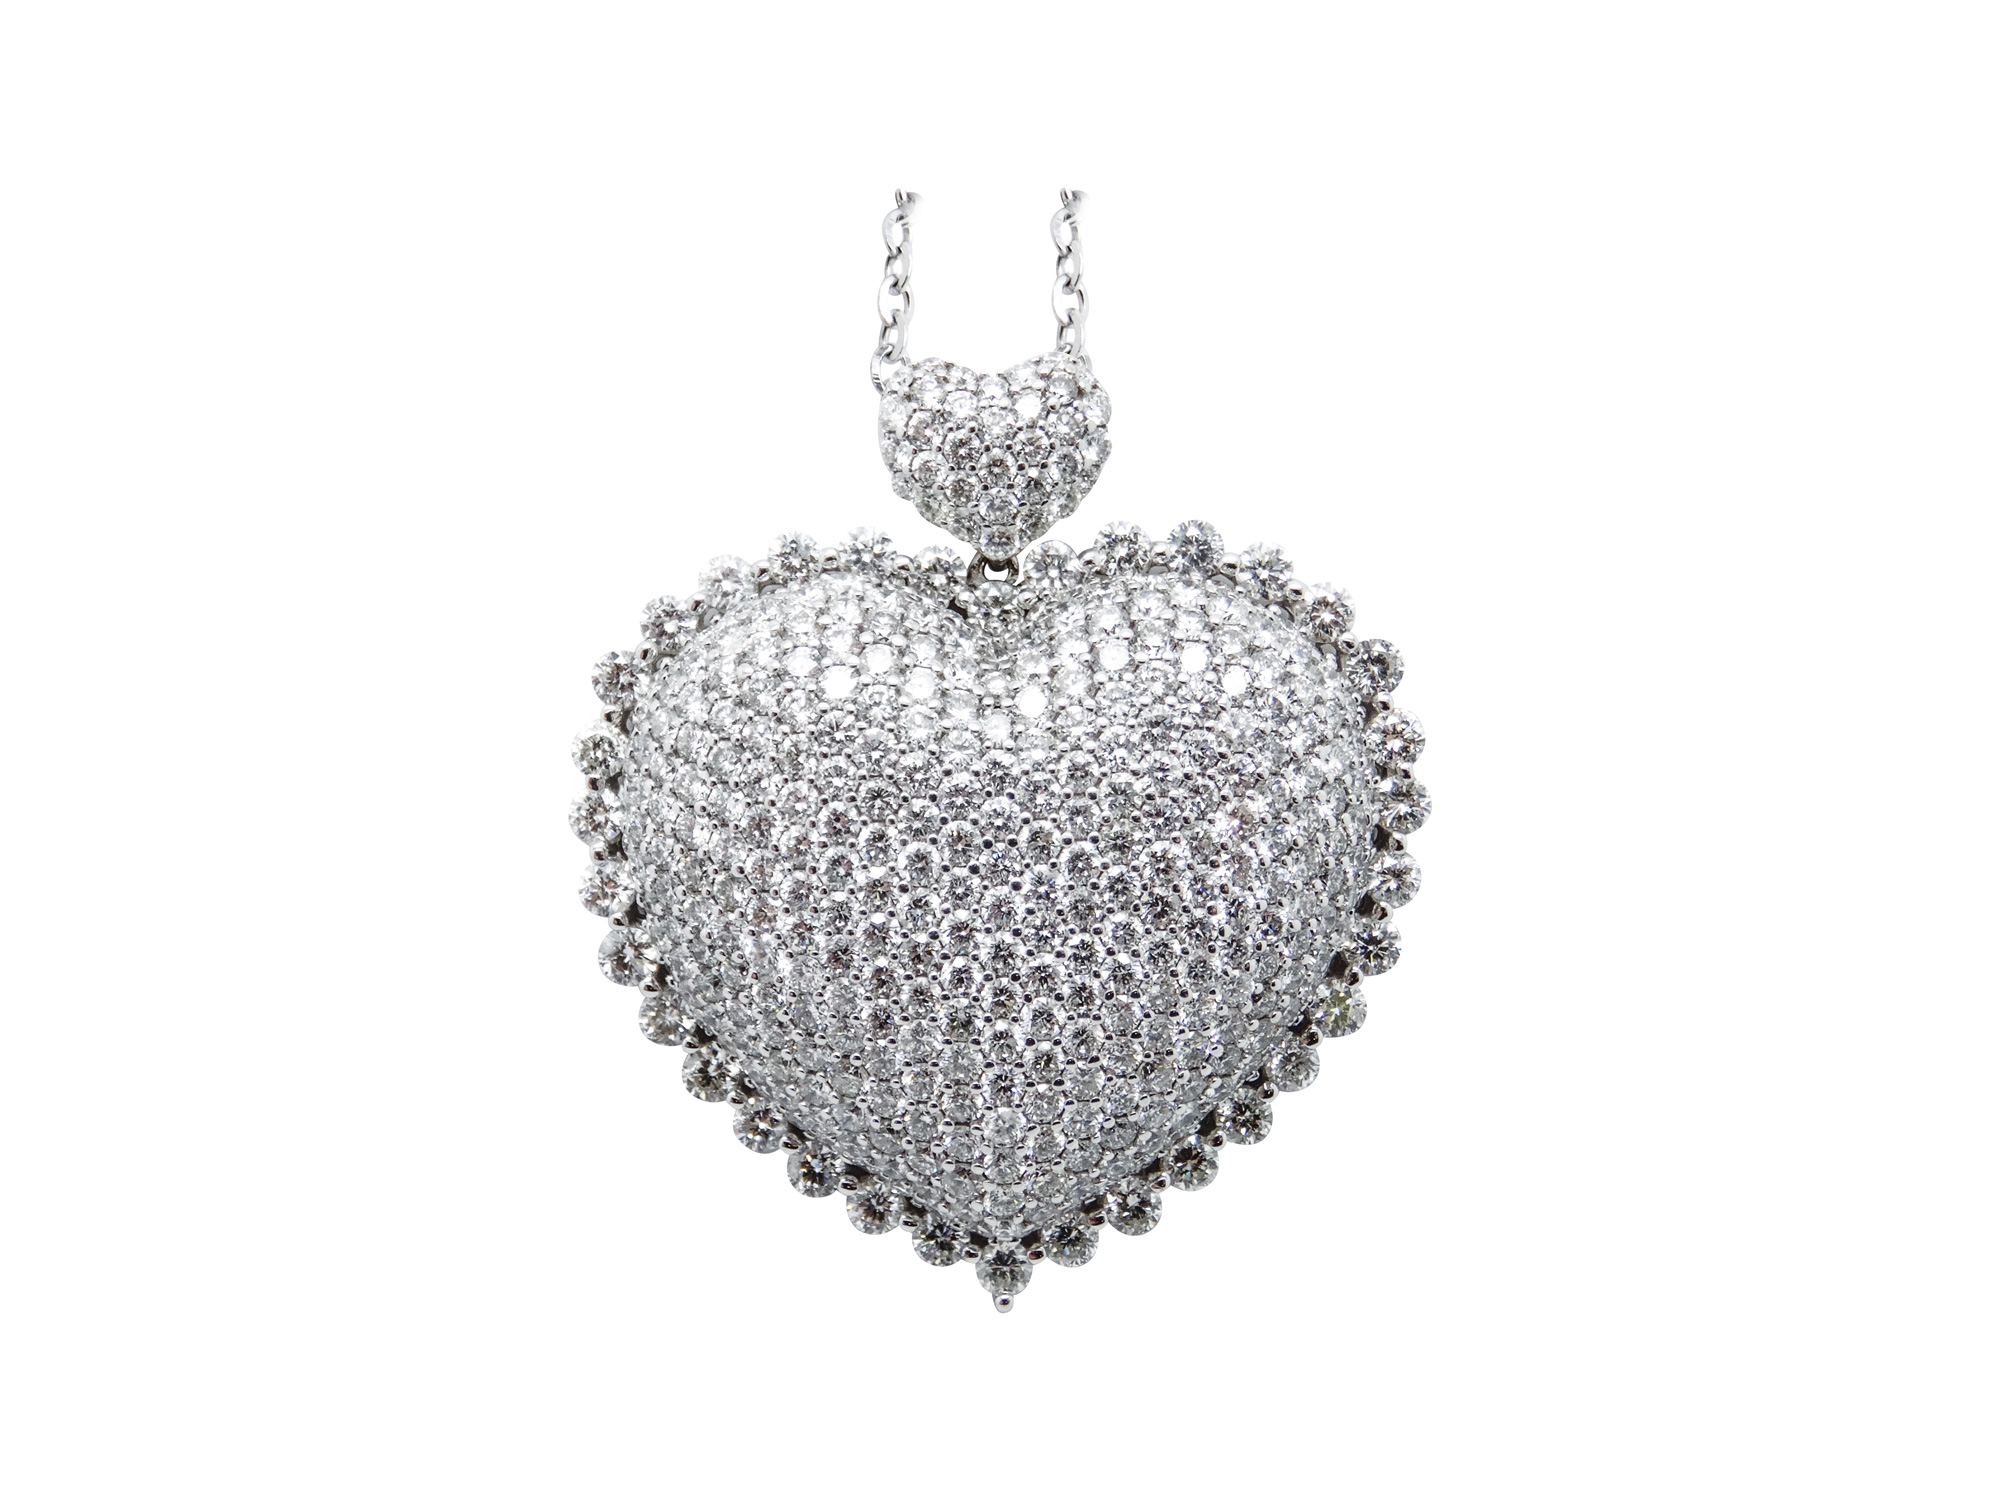 18k white gold heart pendant with 5.25ct of diamonds